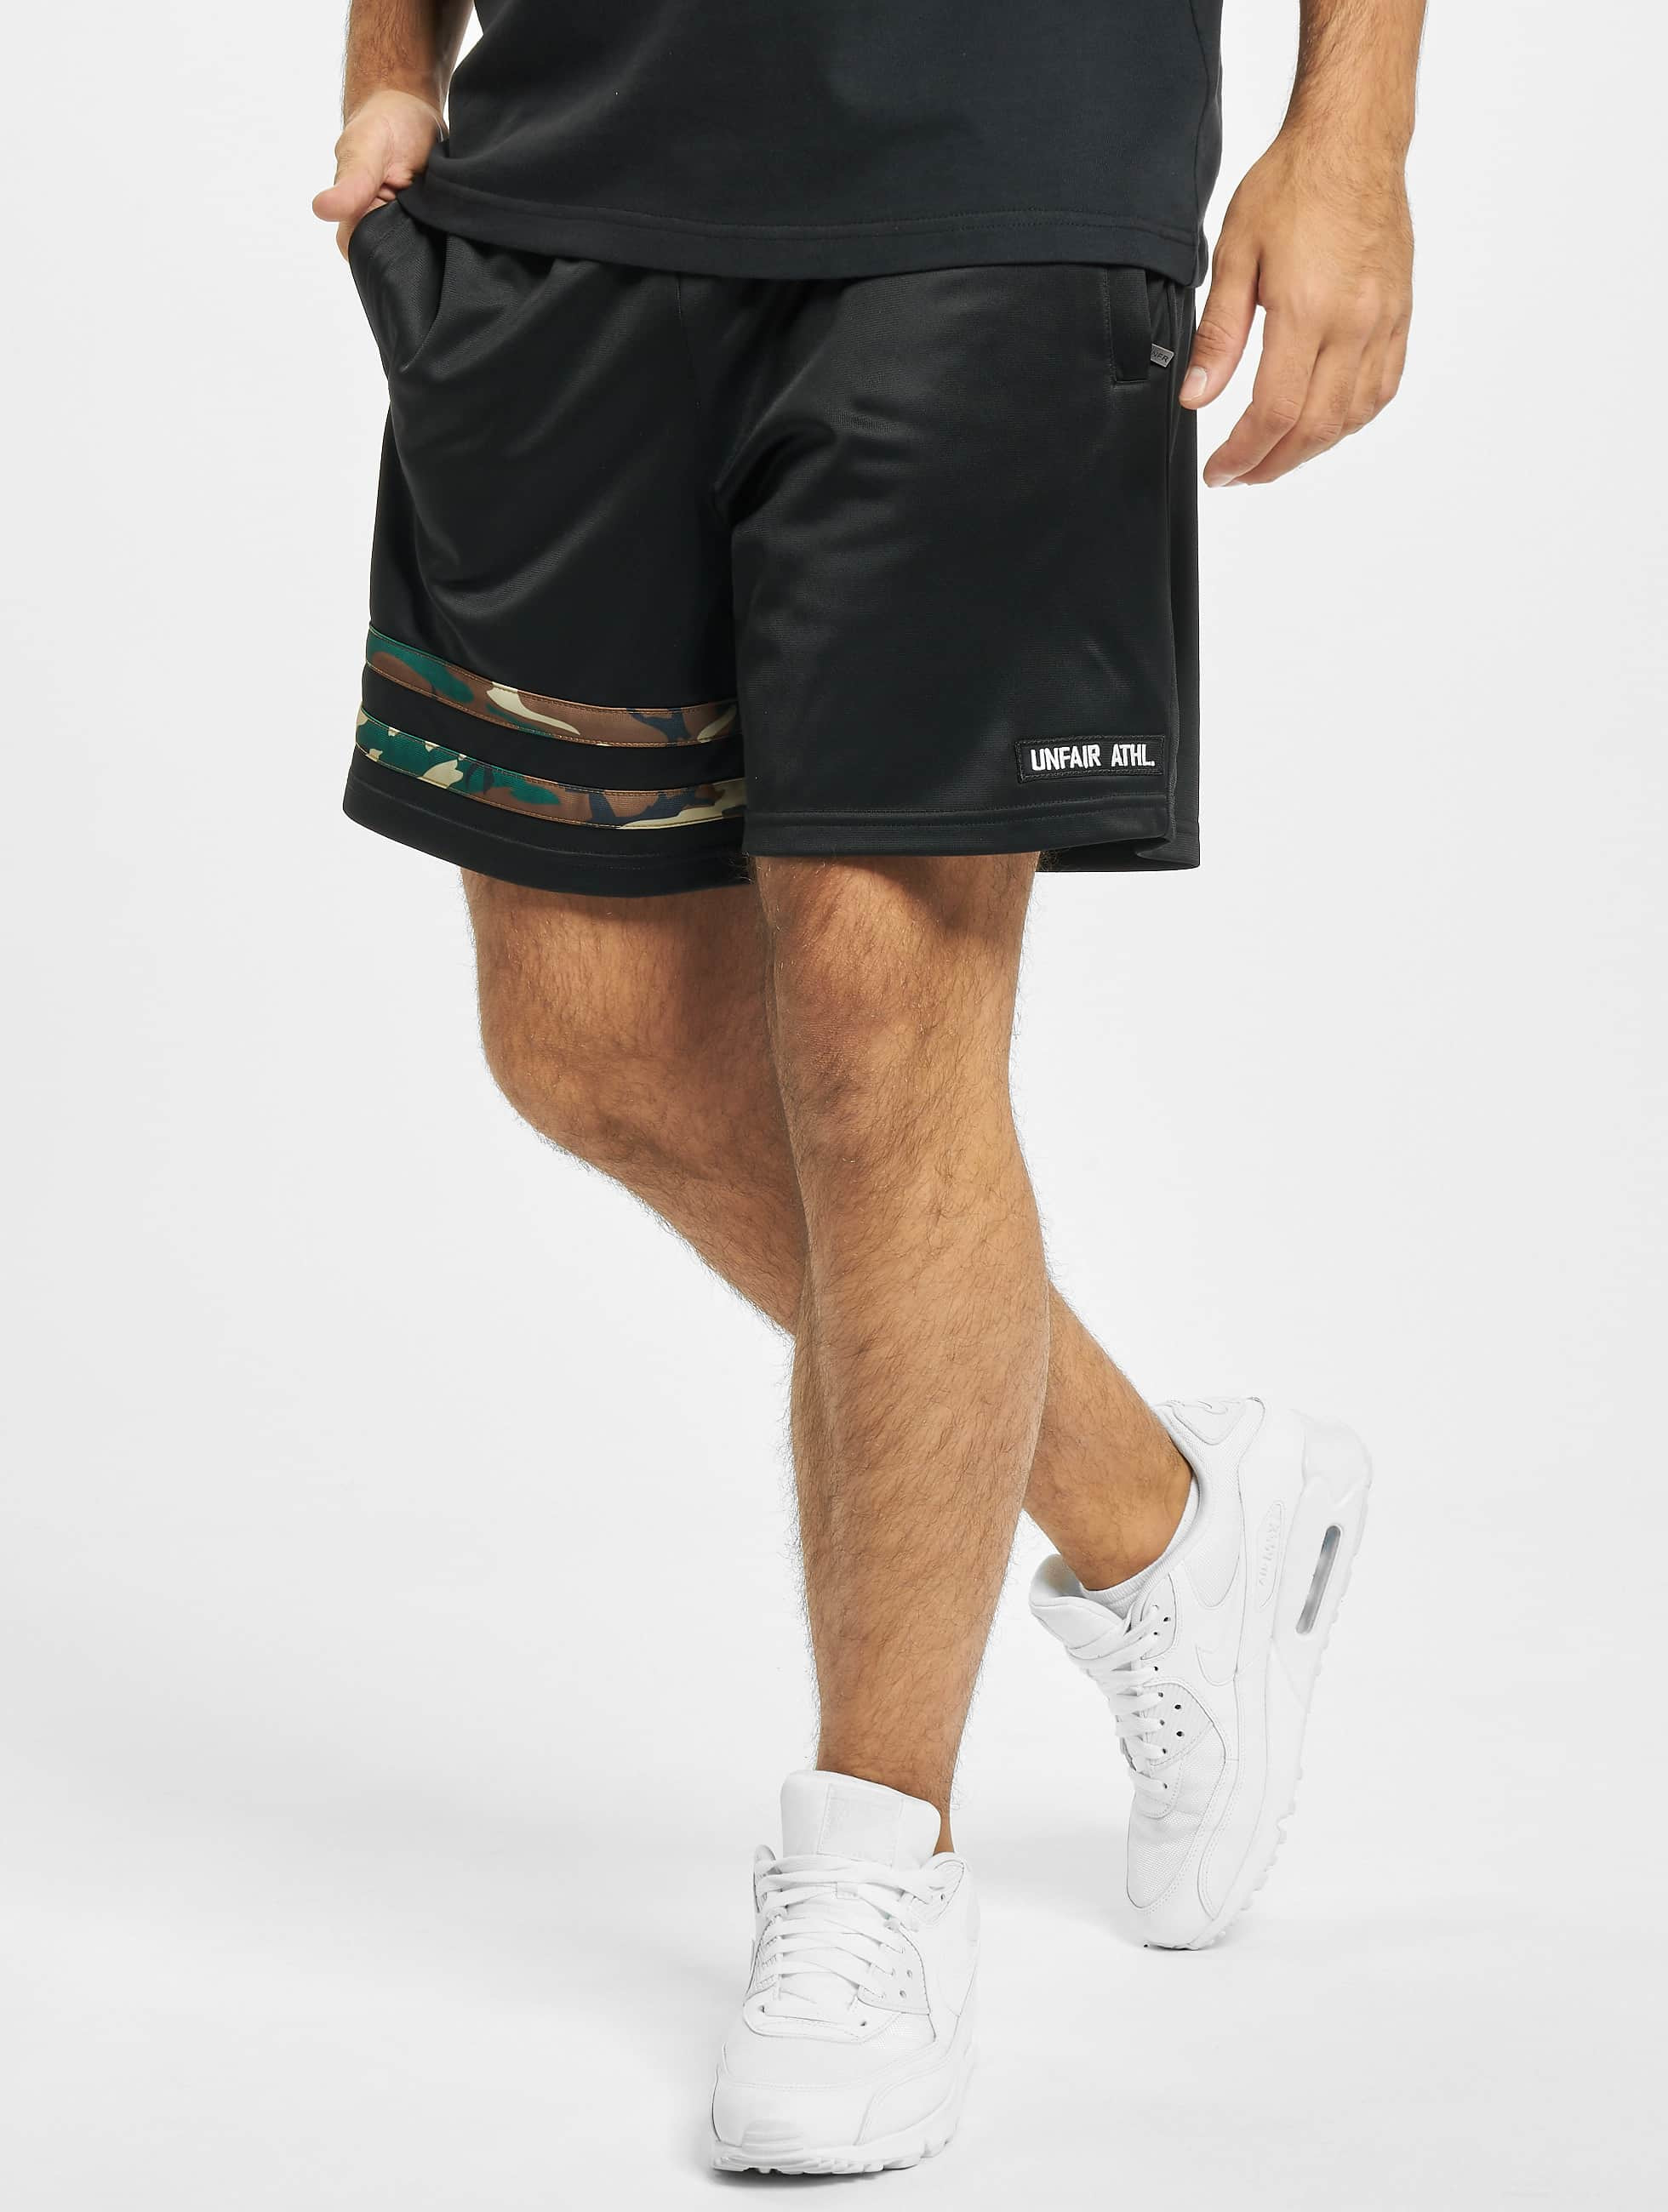 UNFAIR ATHLETICS Shorts DMWU schwarz